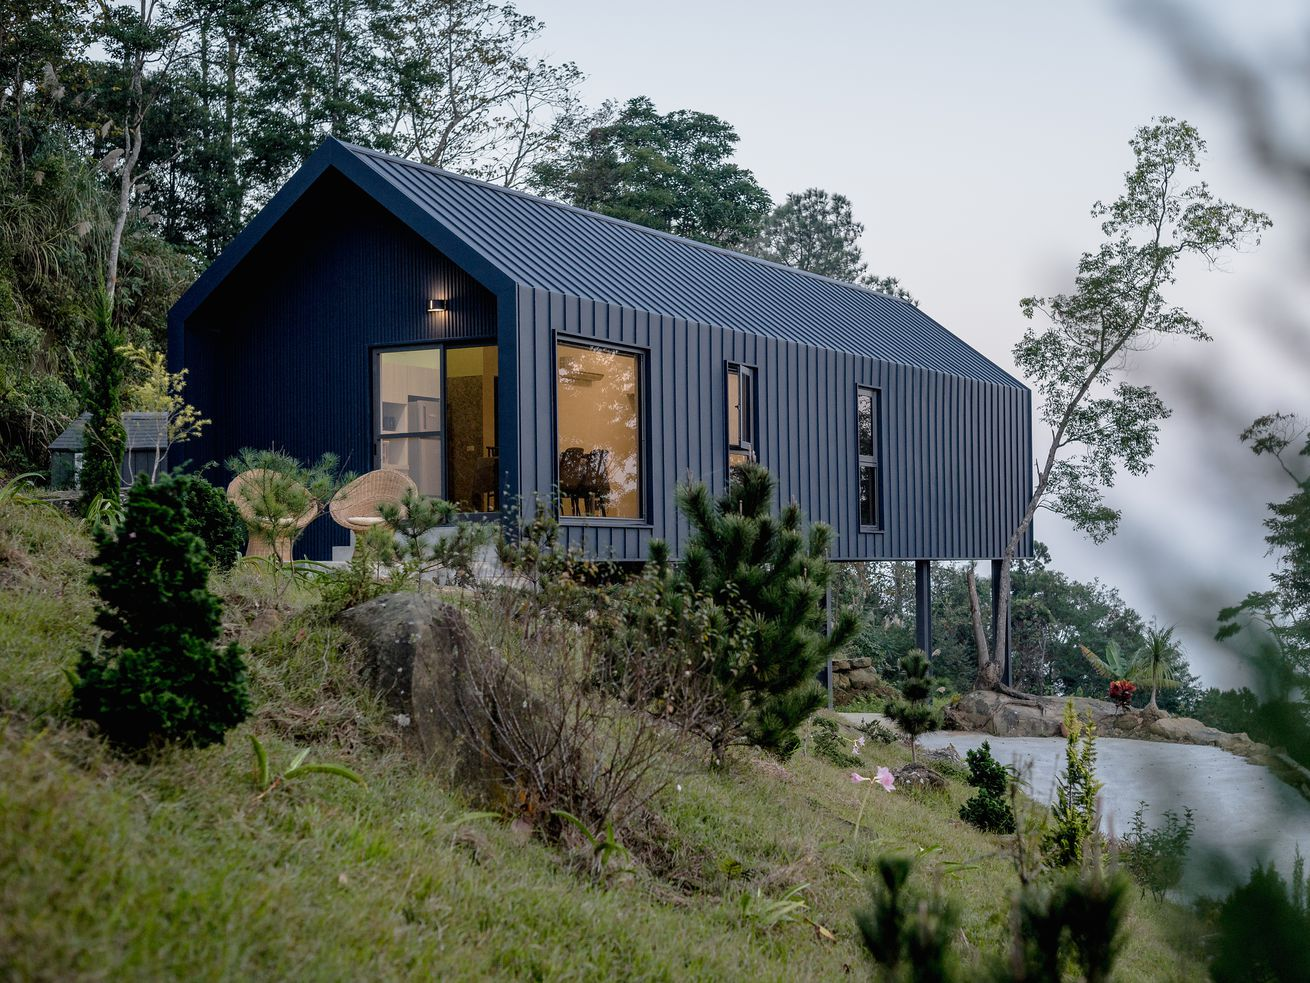 Pitch-roofed black-clad house on stilts cantilevering over mountain.